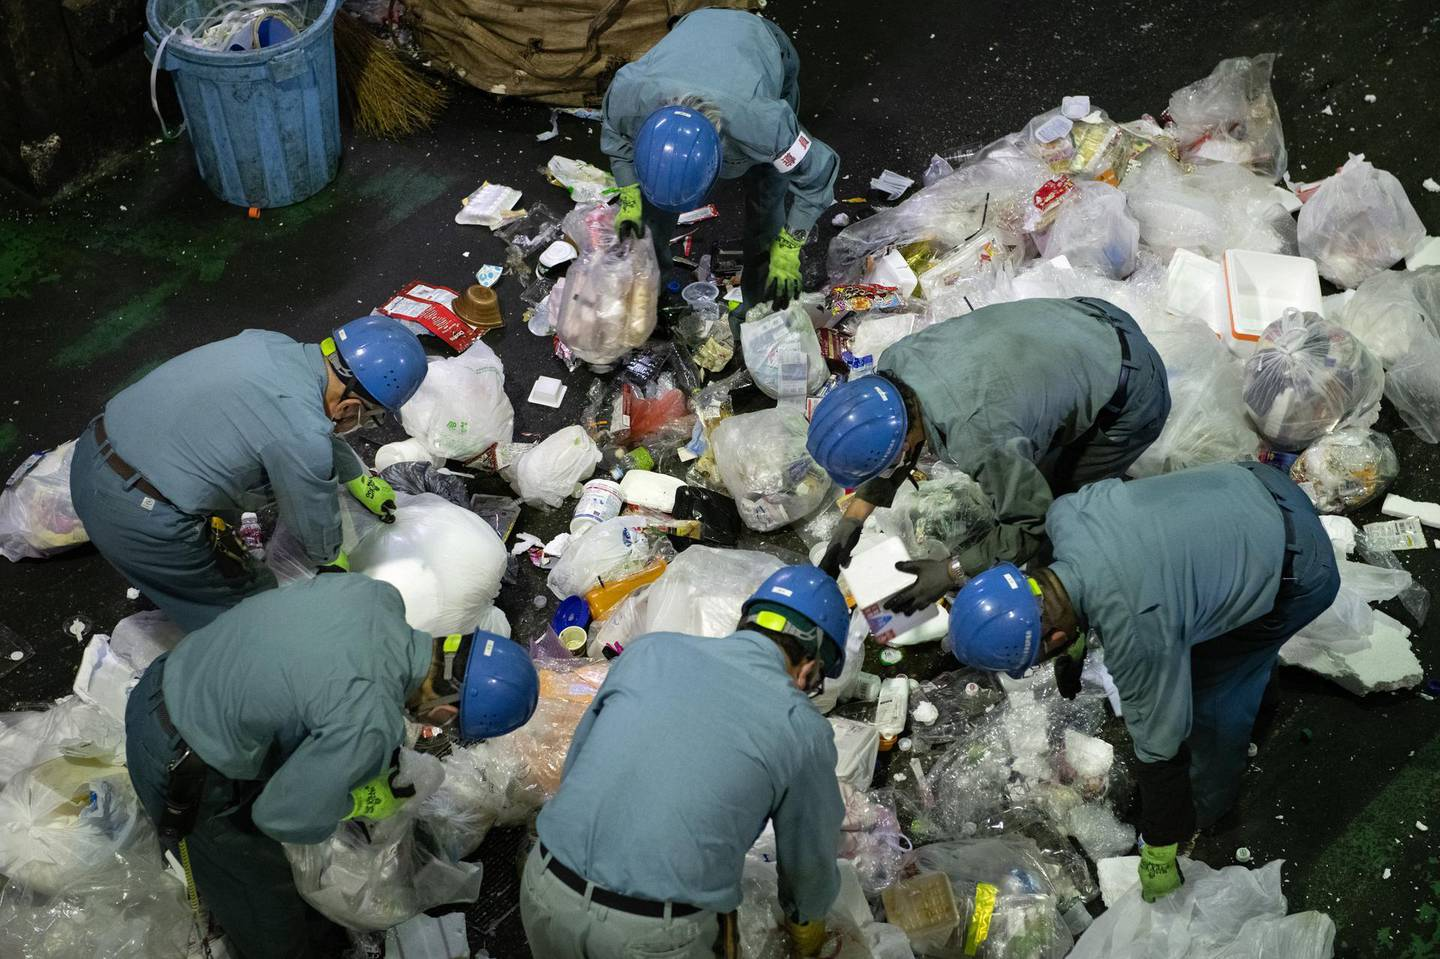 TOKYO, JAPAN - NOVEMBER 19: Workers sort through plastic household waste at Minato plastic household waste at Minato Resource Recycle Centre on November 19, 2020 in Tokyo, Japan. Despite its size, Japan is the world's second largest exporter of plastic waste after the USA and is second only to the US in consumption of single-use plastic packaging per person. Around 10 million tons of plastic is produced a year - the third highest amount in the world - with roughly three quarters being discarded within 12 months. Although the government has made efforts recently to address the issue, it declined, along with the USA, to sign a 2017 agreement between G7 countries to reduce the amount of plastic waste in the worlds oceans and cut down on the usage of single-use plastics, such as straws, bottles and cups. Japan has one of the lowest plastic recycling rates among OECD countries - with approximately 75 percent of waste sent to incinerators where it has to be burnt using ultra-high-temperature furnaces and filter systems to avoid releasing dioxins. However, the resulting exhaust fumes contribute to climate change. (Photo by Carl Court/Getty Images)